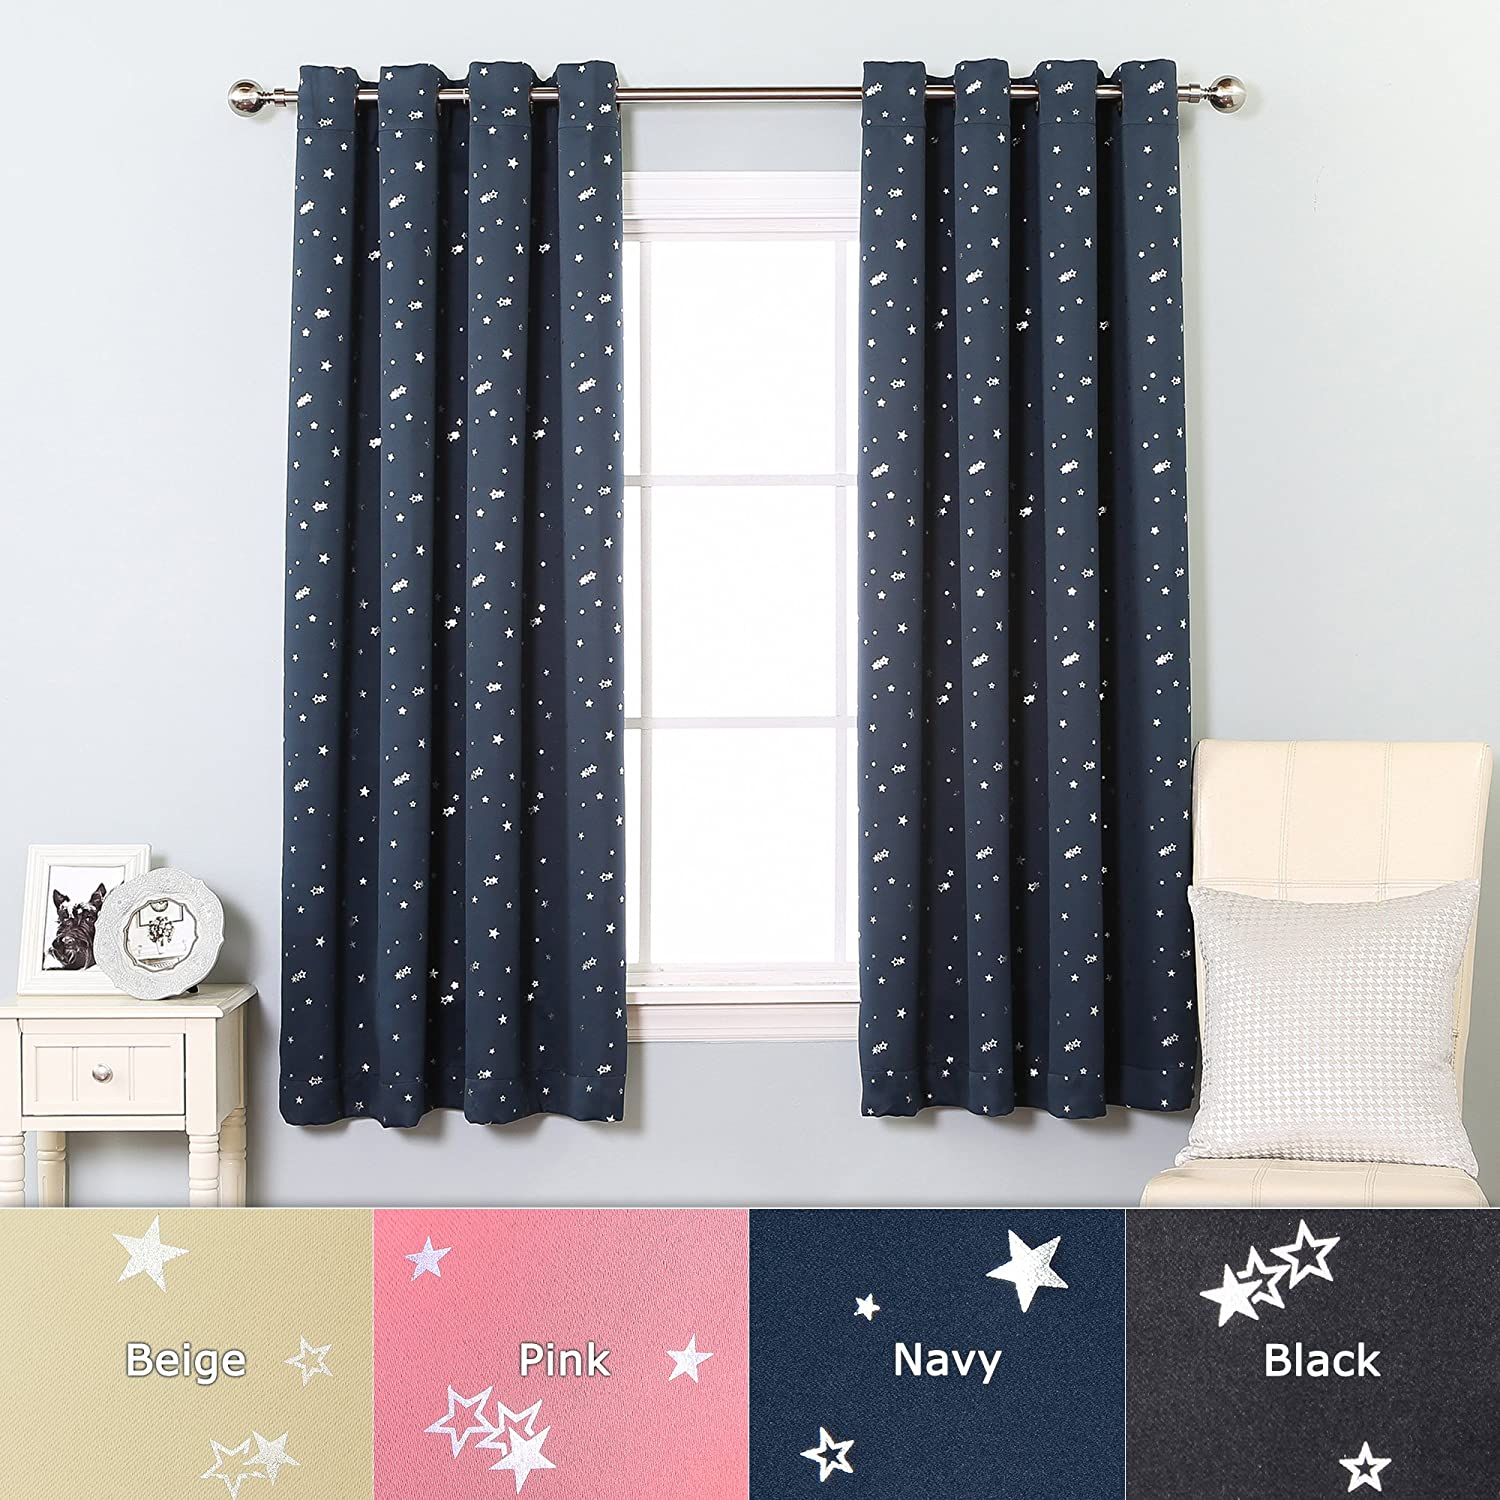 Grommet Star Print Thermal Insulated Blackout Curtain Set